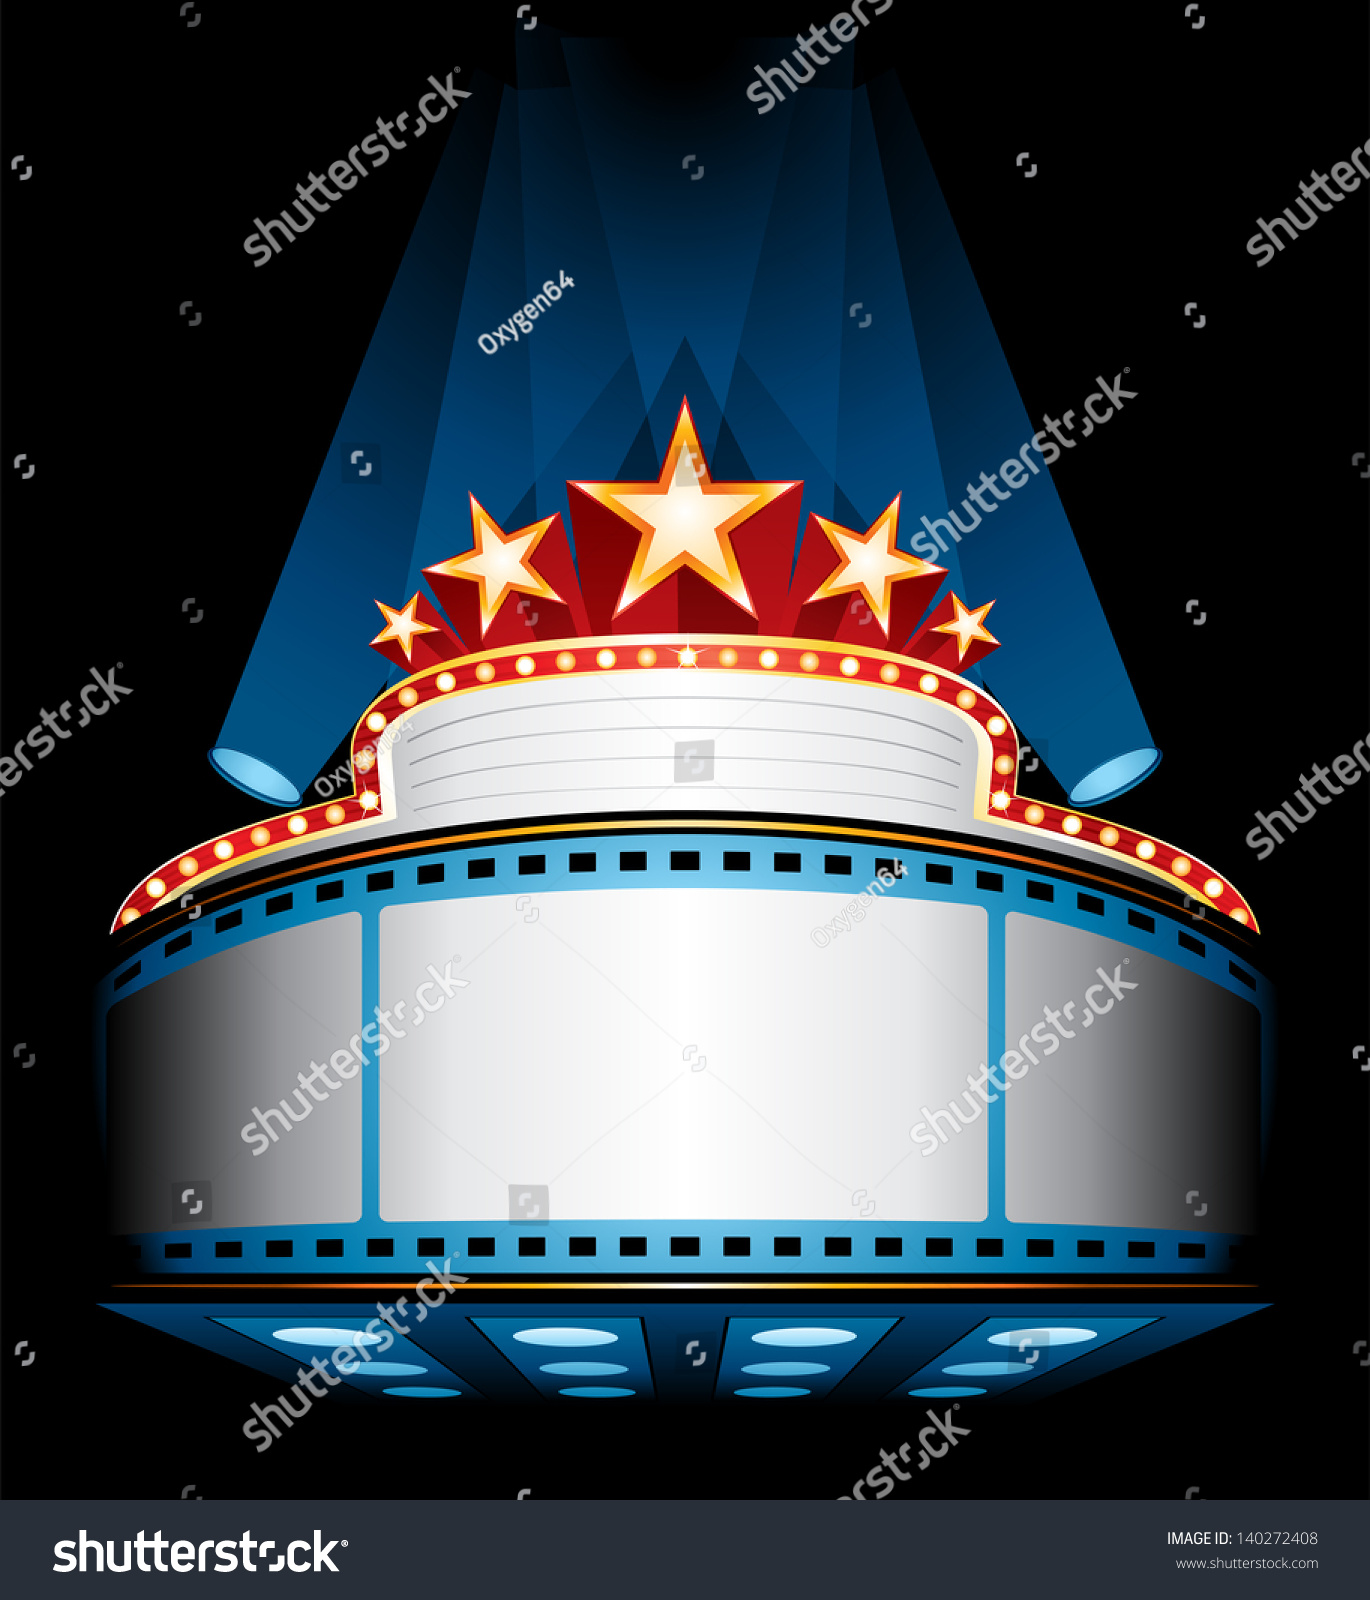 Illuminated Cinema Marquee Stock-Vektorgrafik (Lizenzfrei) 140272408 ...